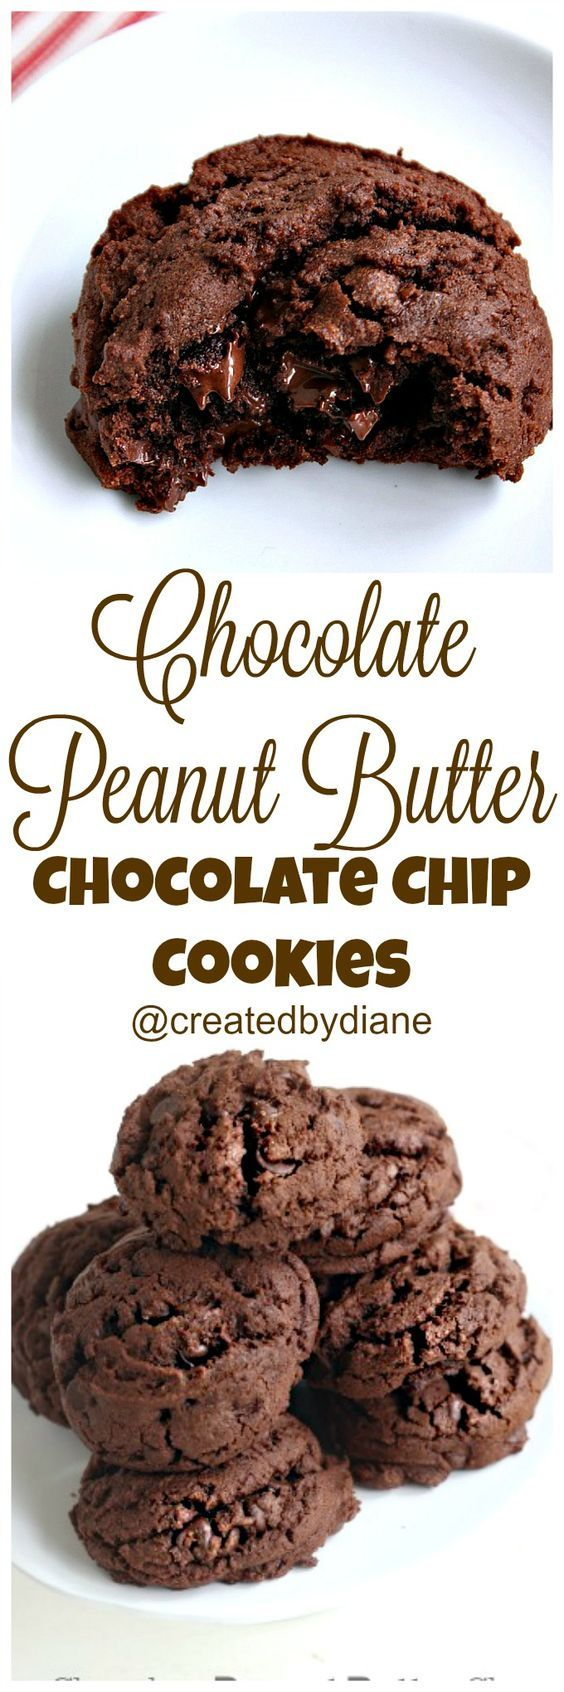 Chocolaty peanut butter chocolate chip cookies @createdbydiane